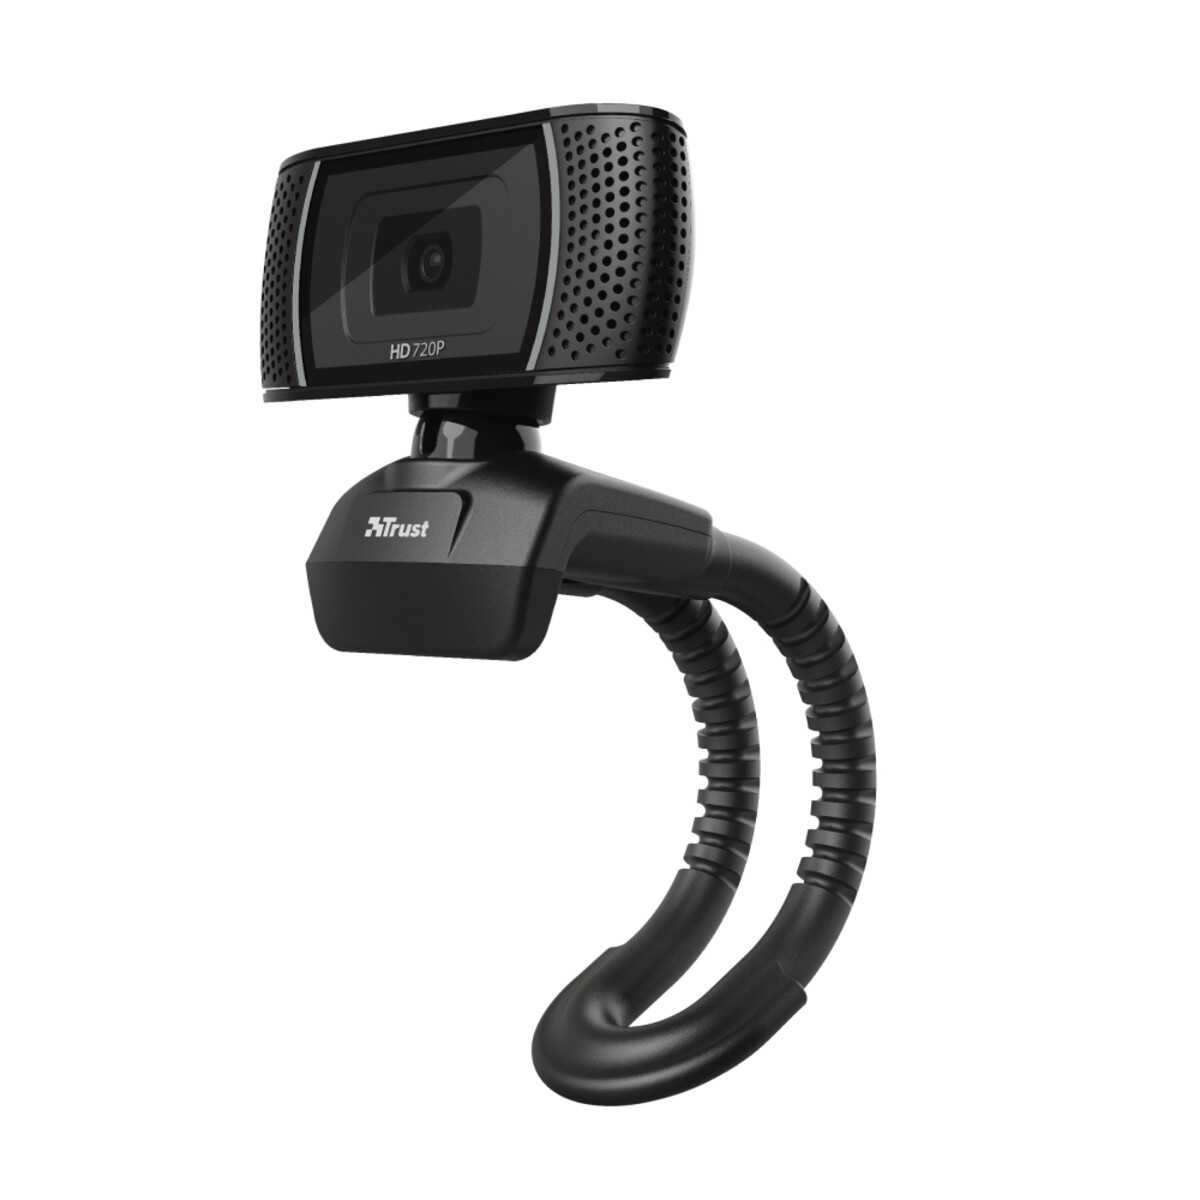 8713439186796-trust-trino-hd-video-webcam-8-mp-usb-nero